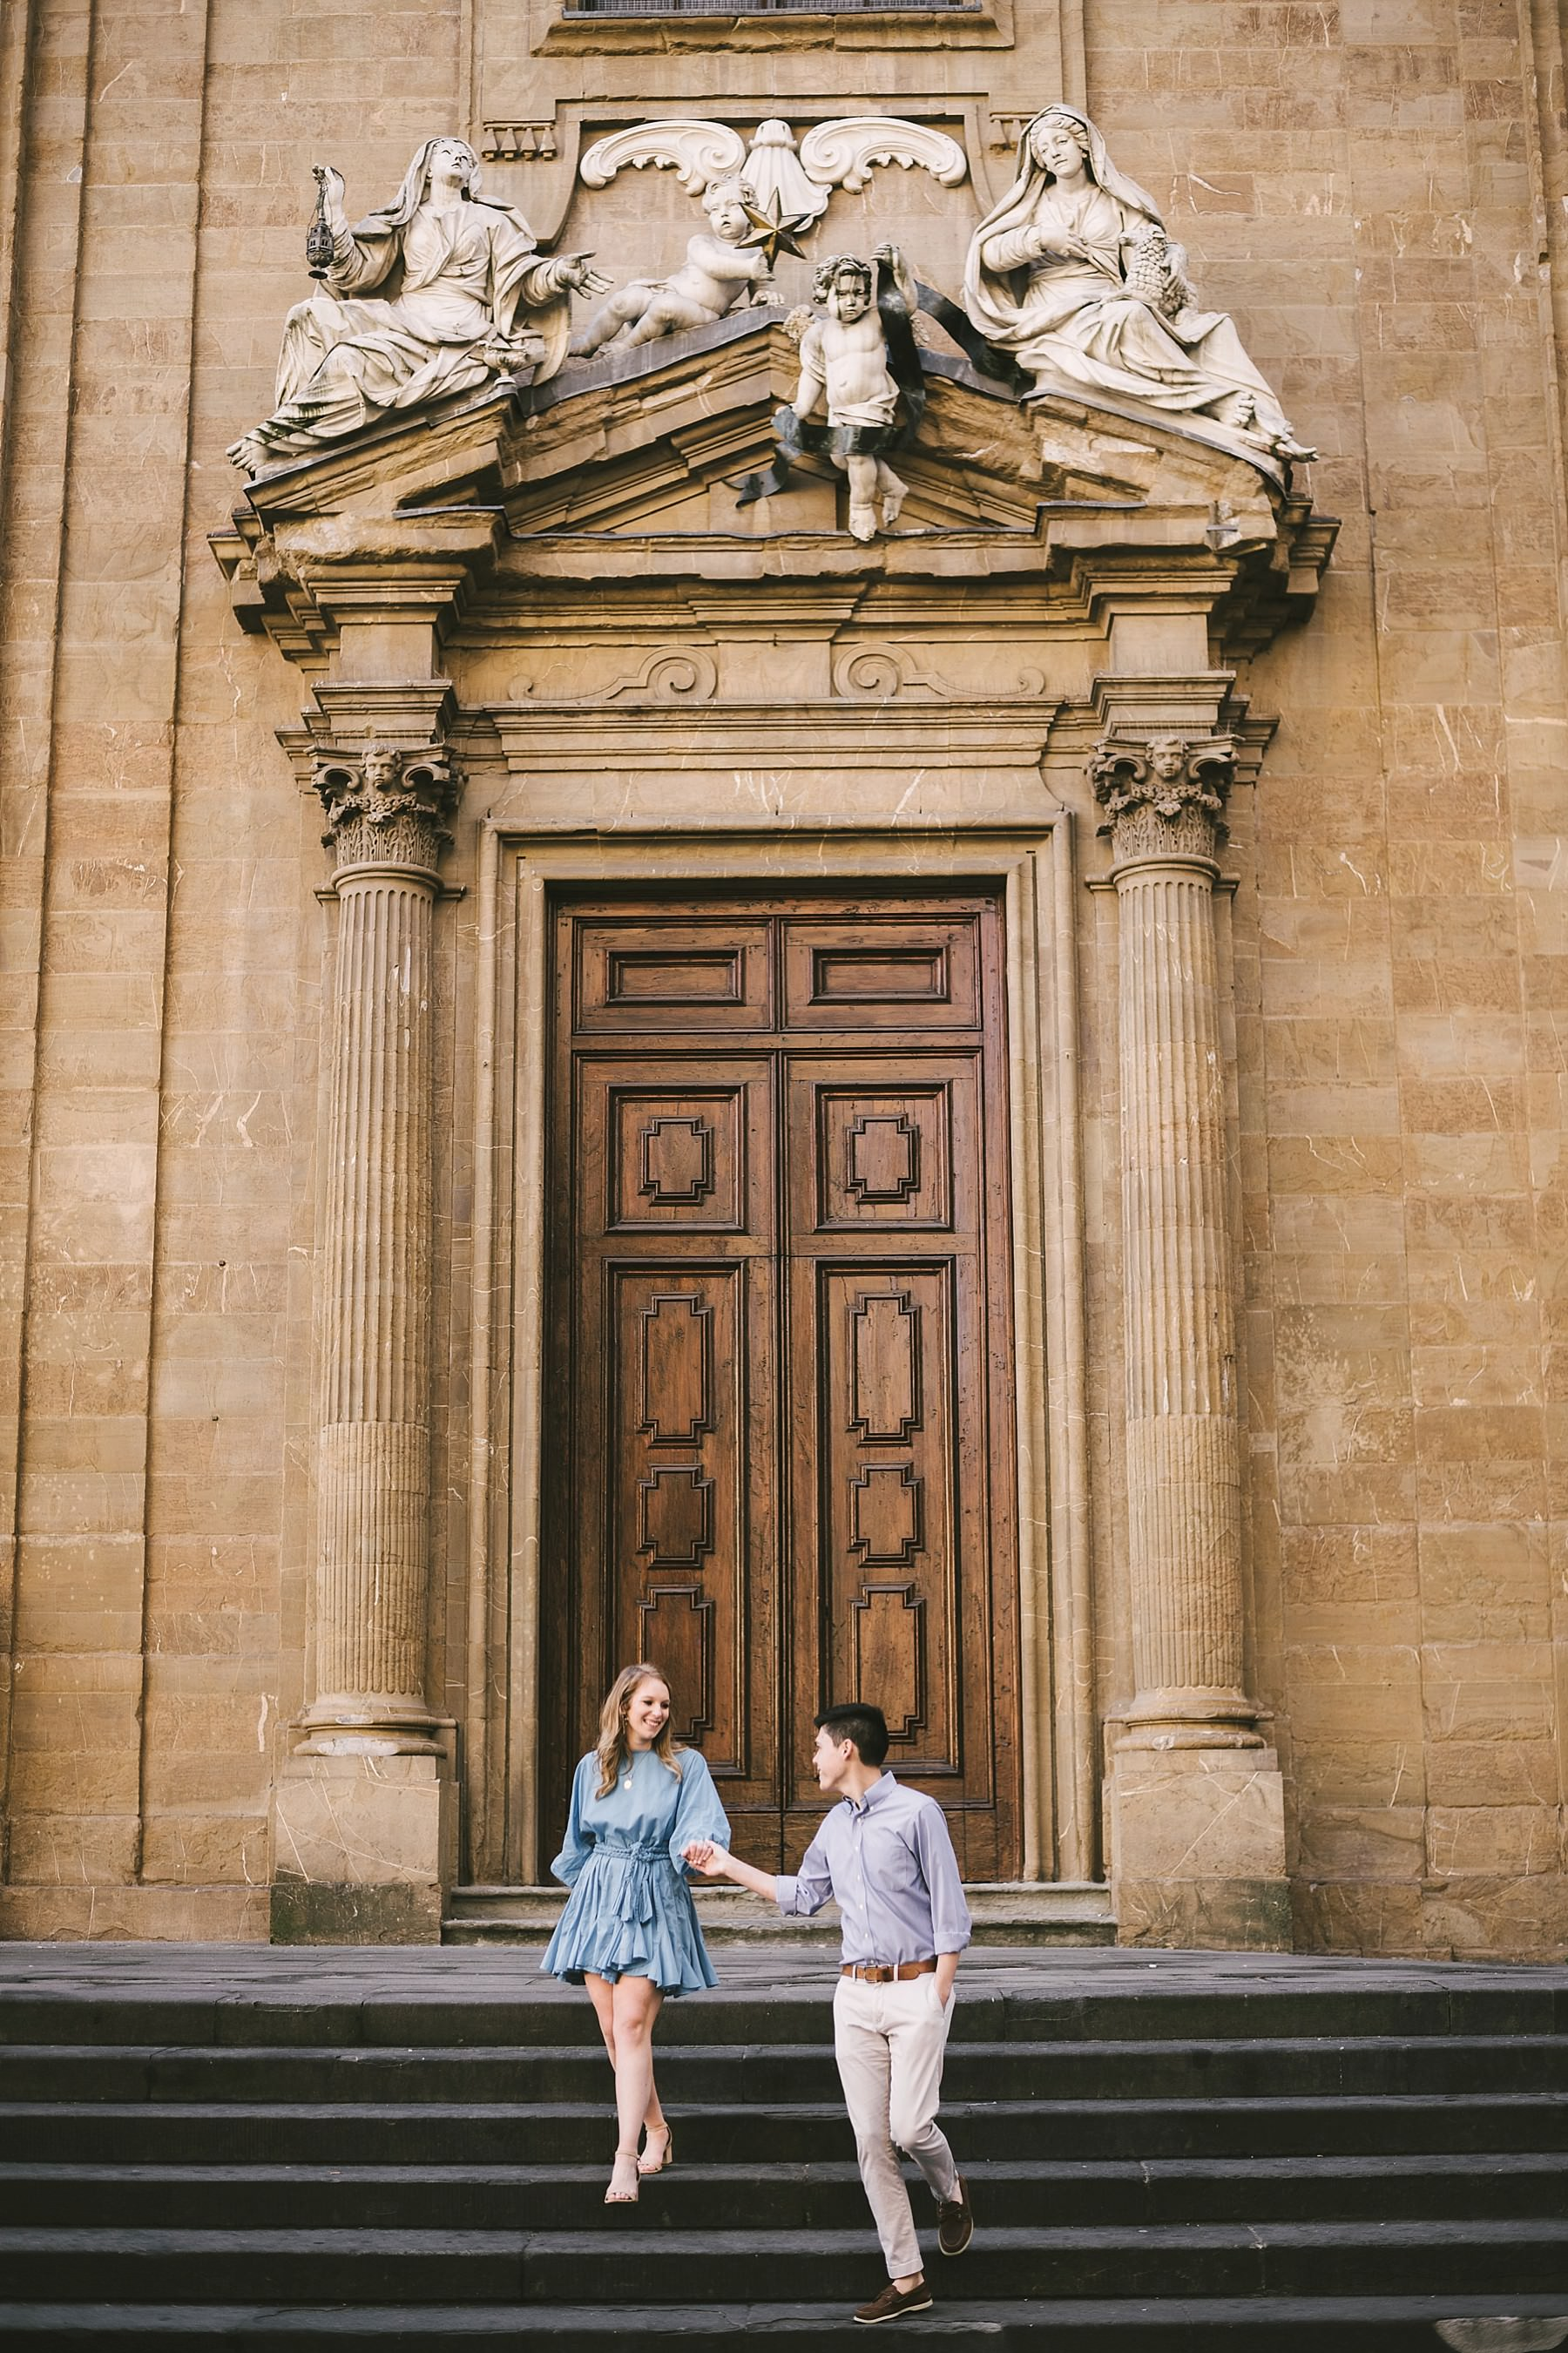 Early morning engagement photo session during a walk tour in the historic centre of Florence near Palazzo Vecchio